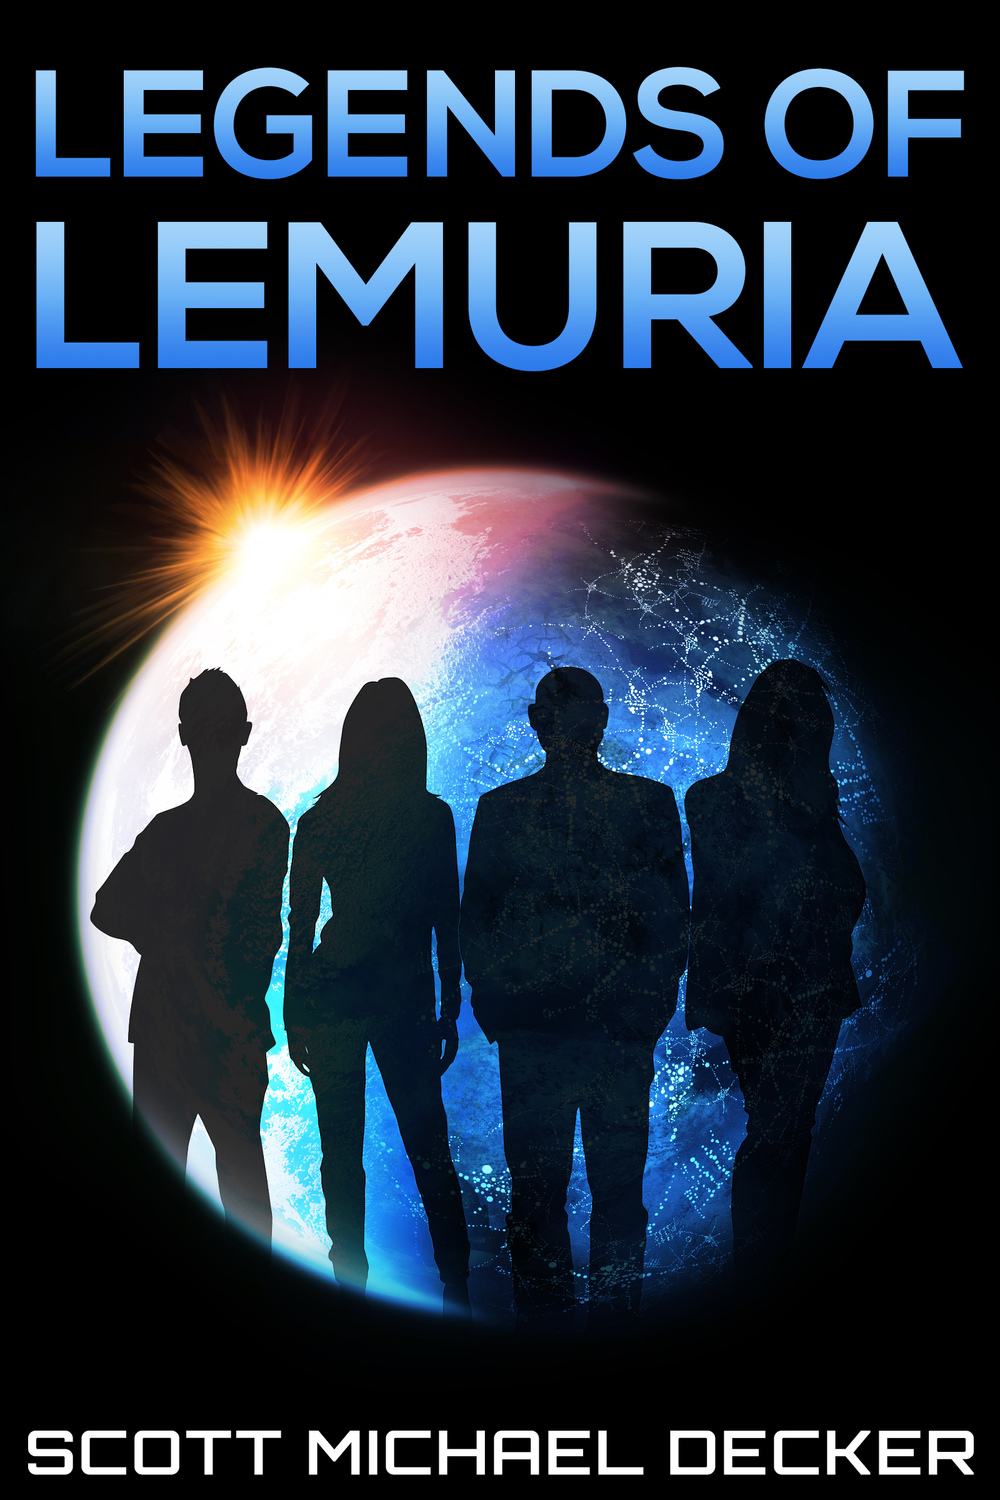 ready-made-sci-fi-cover-design-for-indie-author.jpg